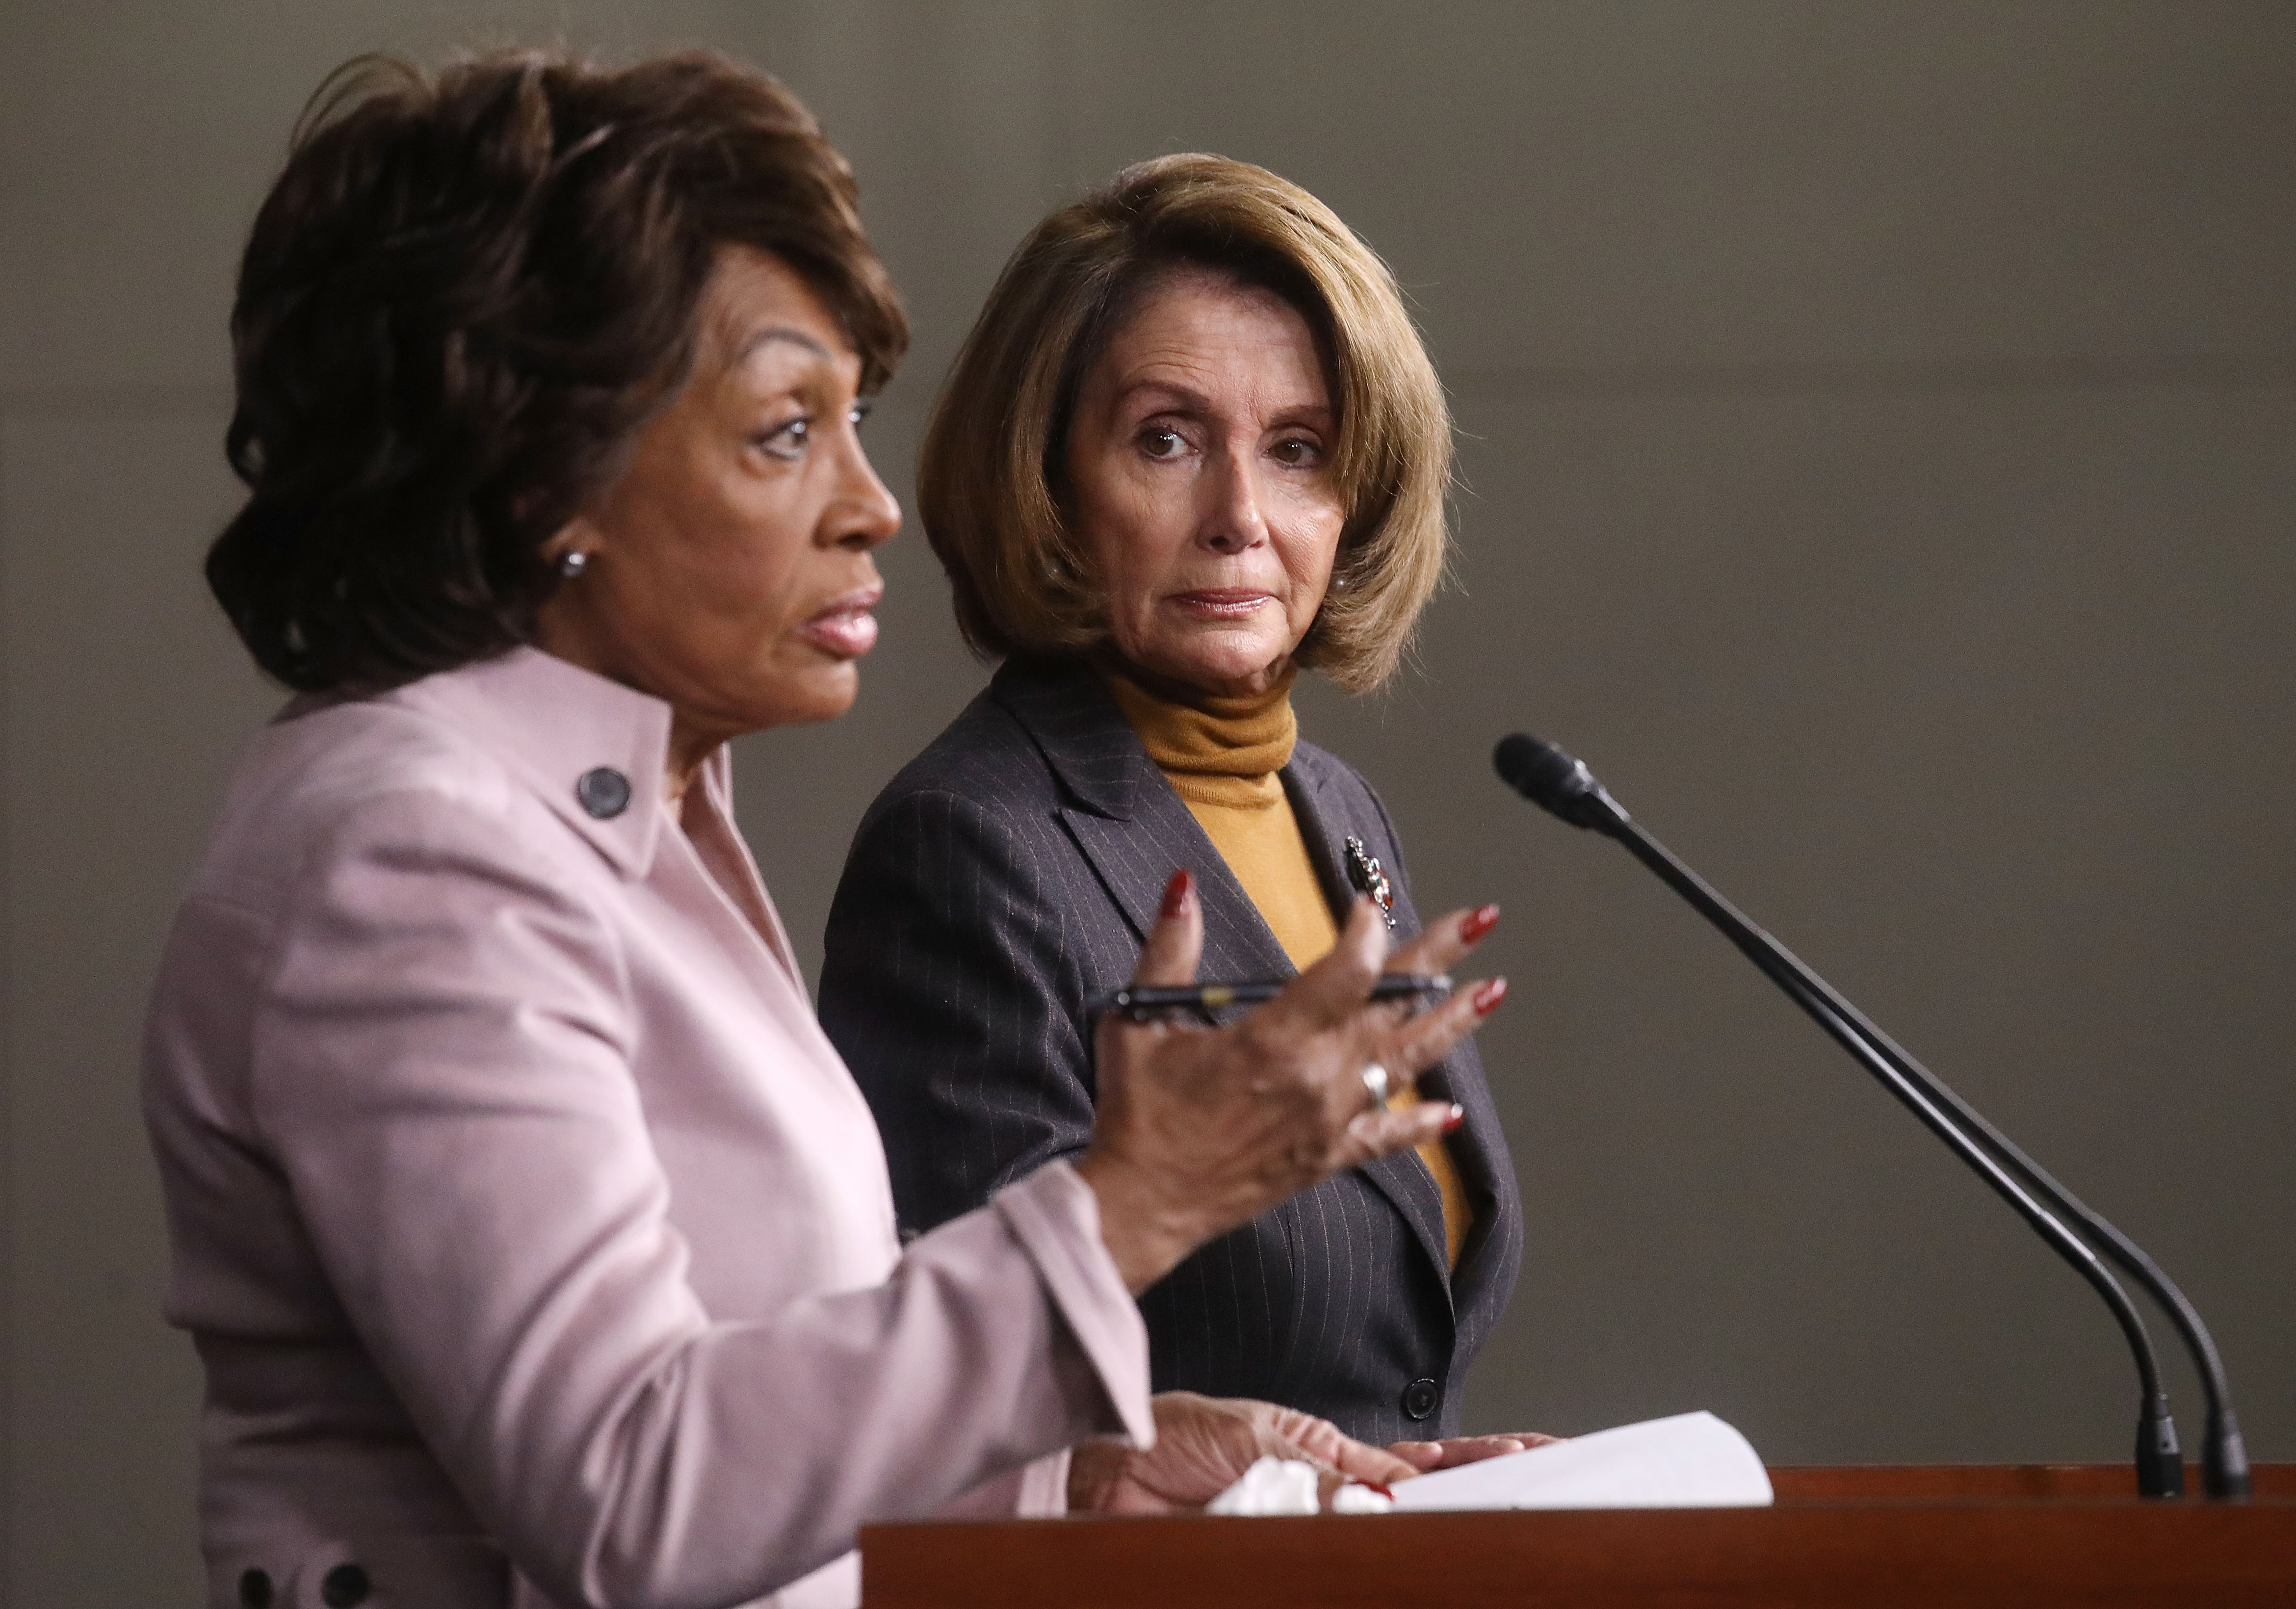 House Minority Leader Nancy Pelosi (D-CA), C, looks on as U.S. Rep. Maxine Waters (D-CA) speaks at a news conference criticizing President Donald Trump's Wall Street policies on Capitol Hill on February 6, 2017 in Washington, D.C. Mario Tama—Getty Images